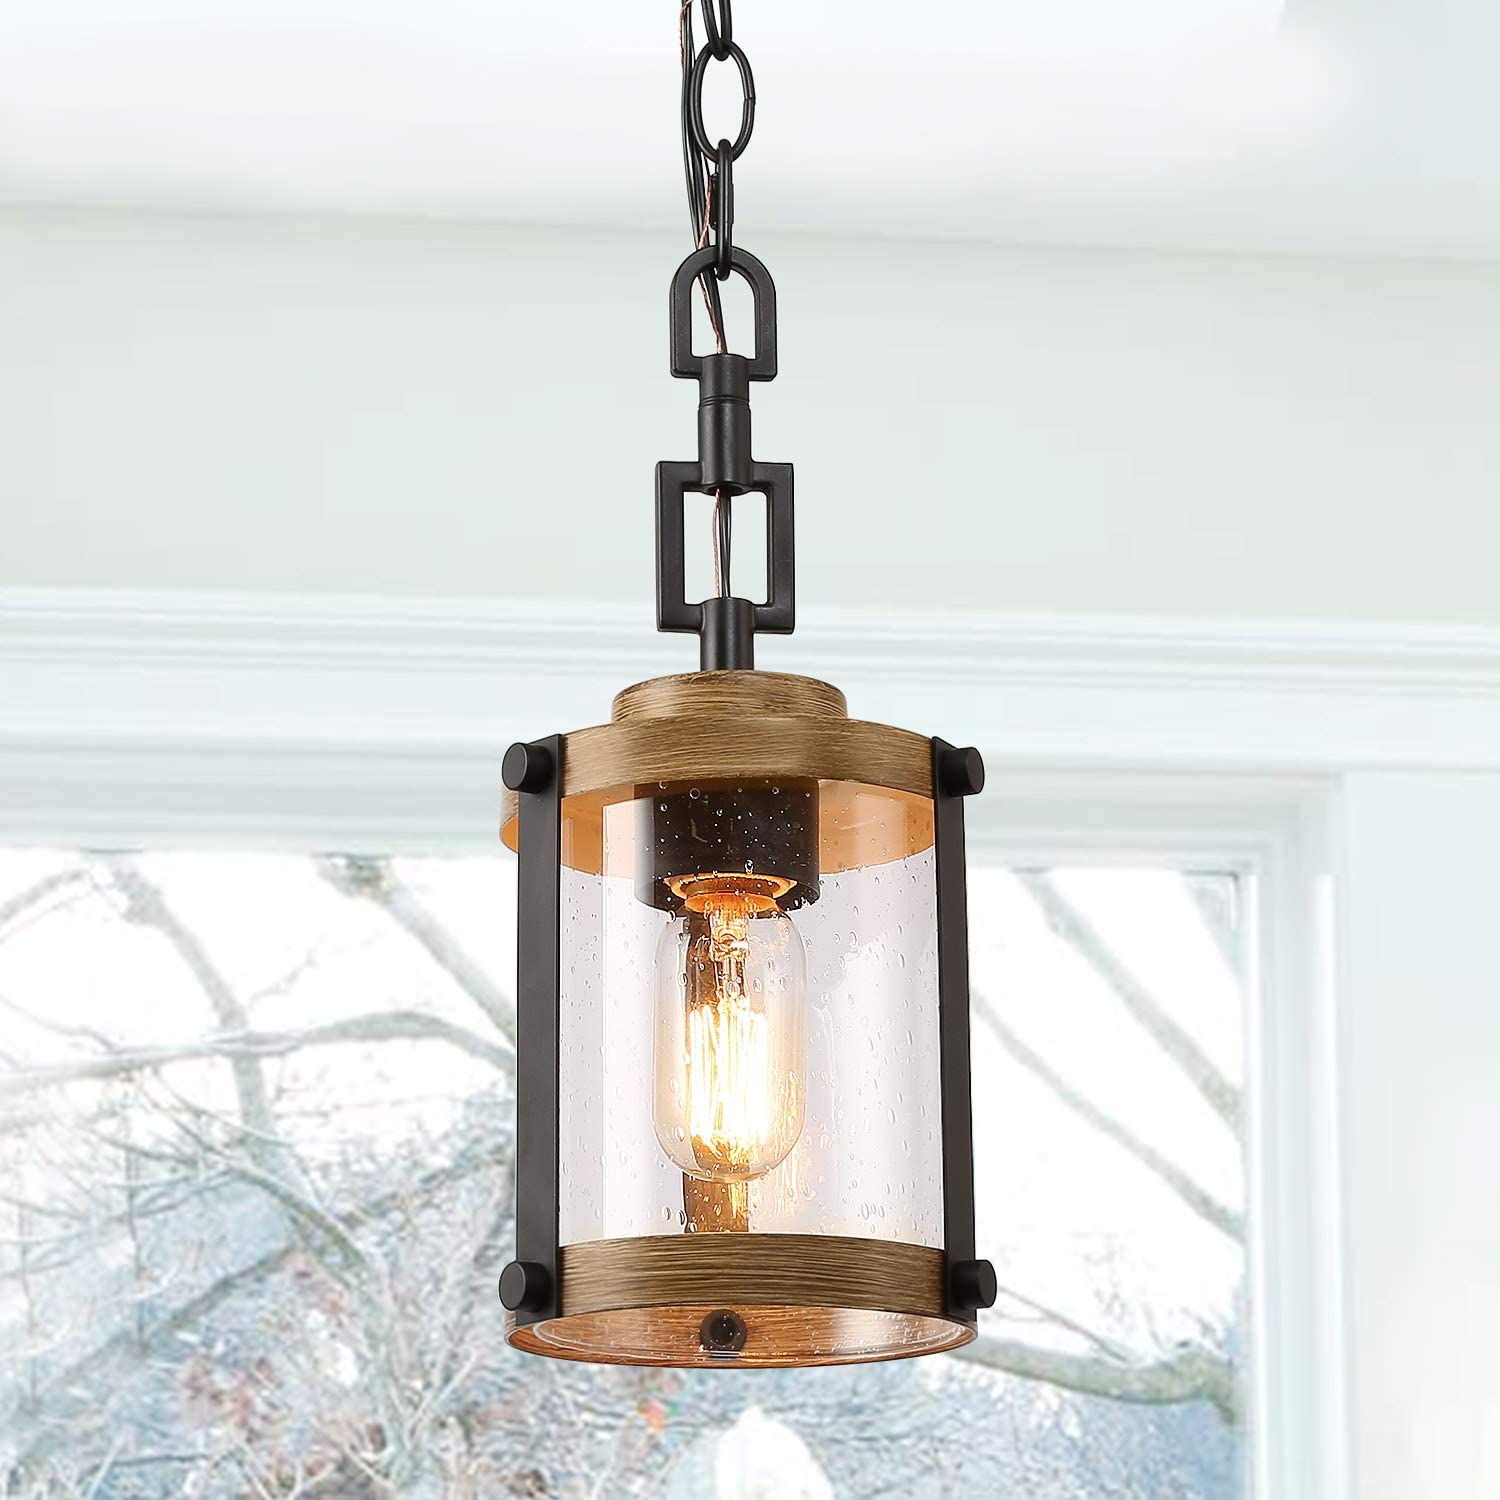 "LOG BARN Farmhouse Rustic Pendant Light, 1 Light Hanging Foyer Lighting Fixture in Distressed Black Metal & Faux Wood Finish with Clear Bubbled Glass Shade, 7.5"" Ceiling Lamp"